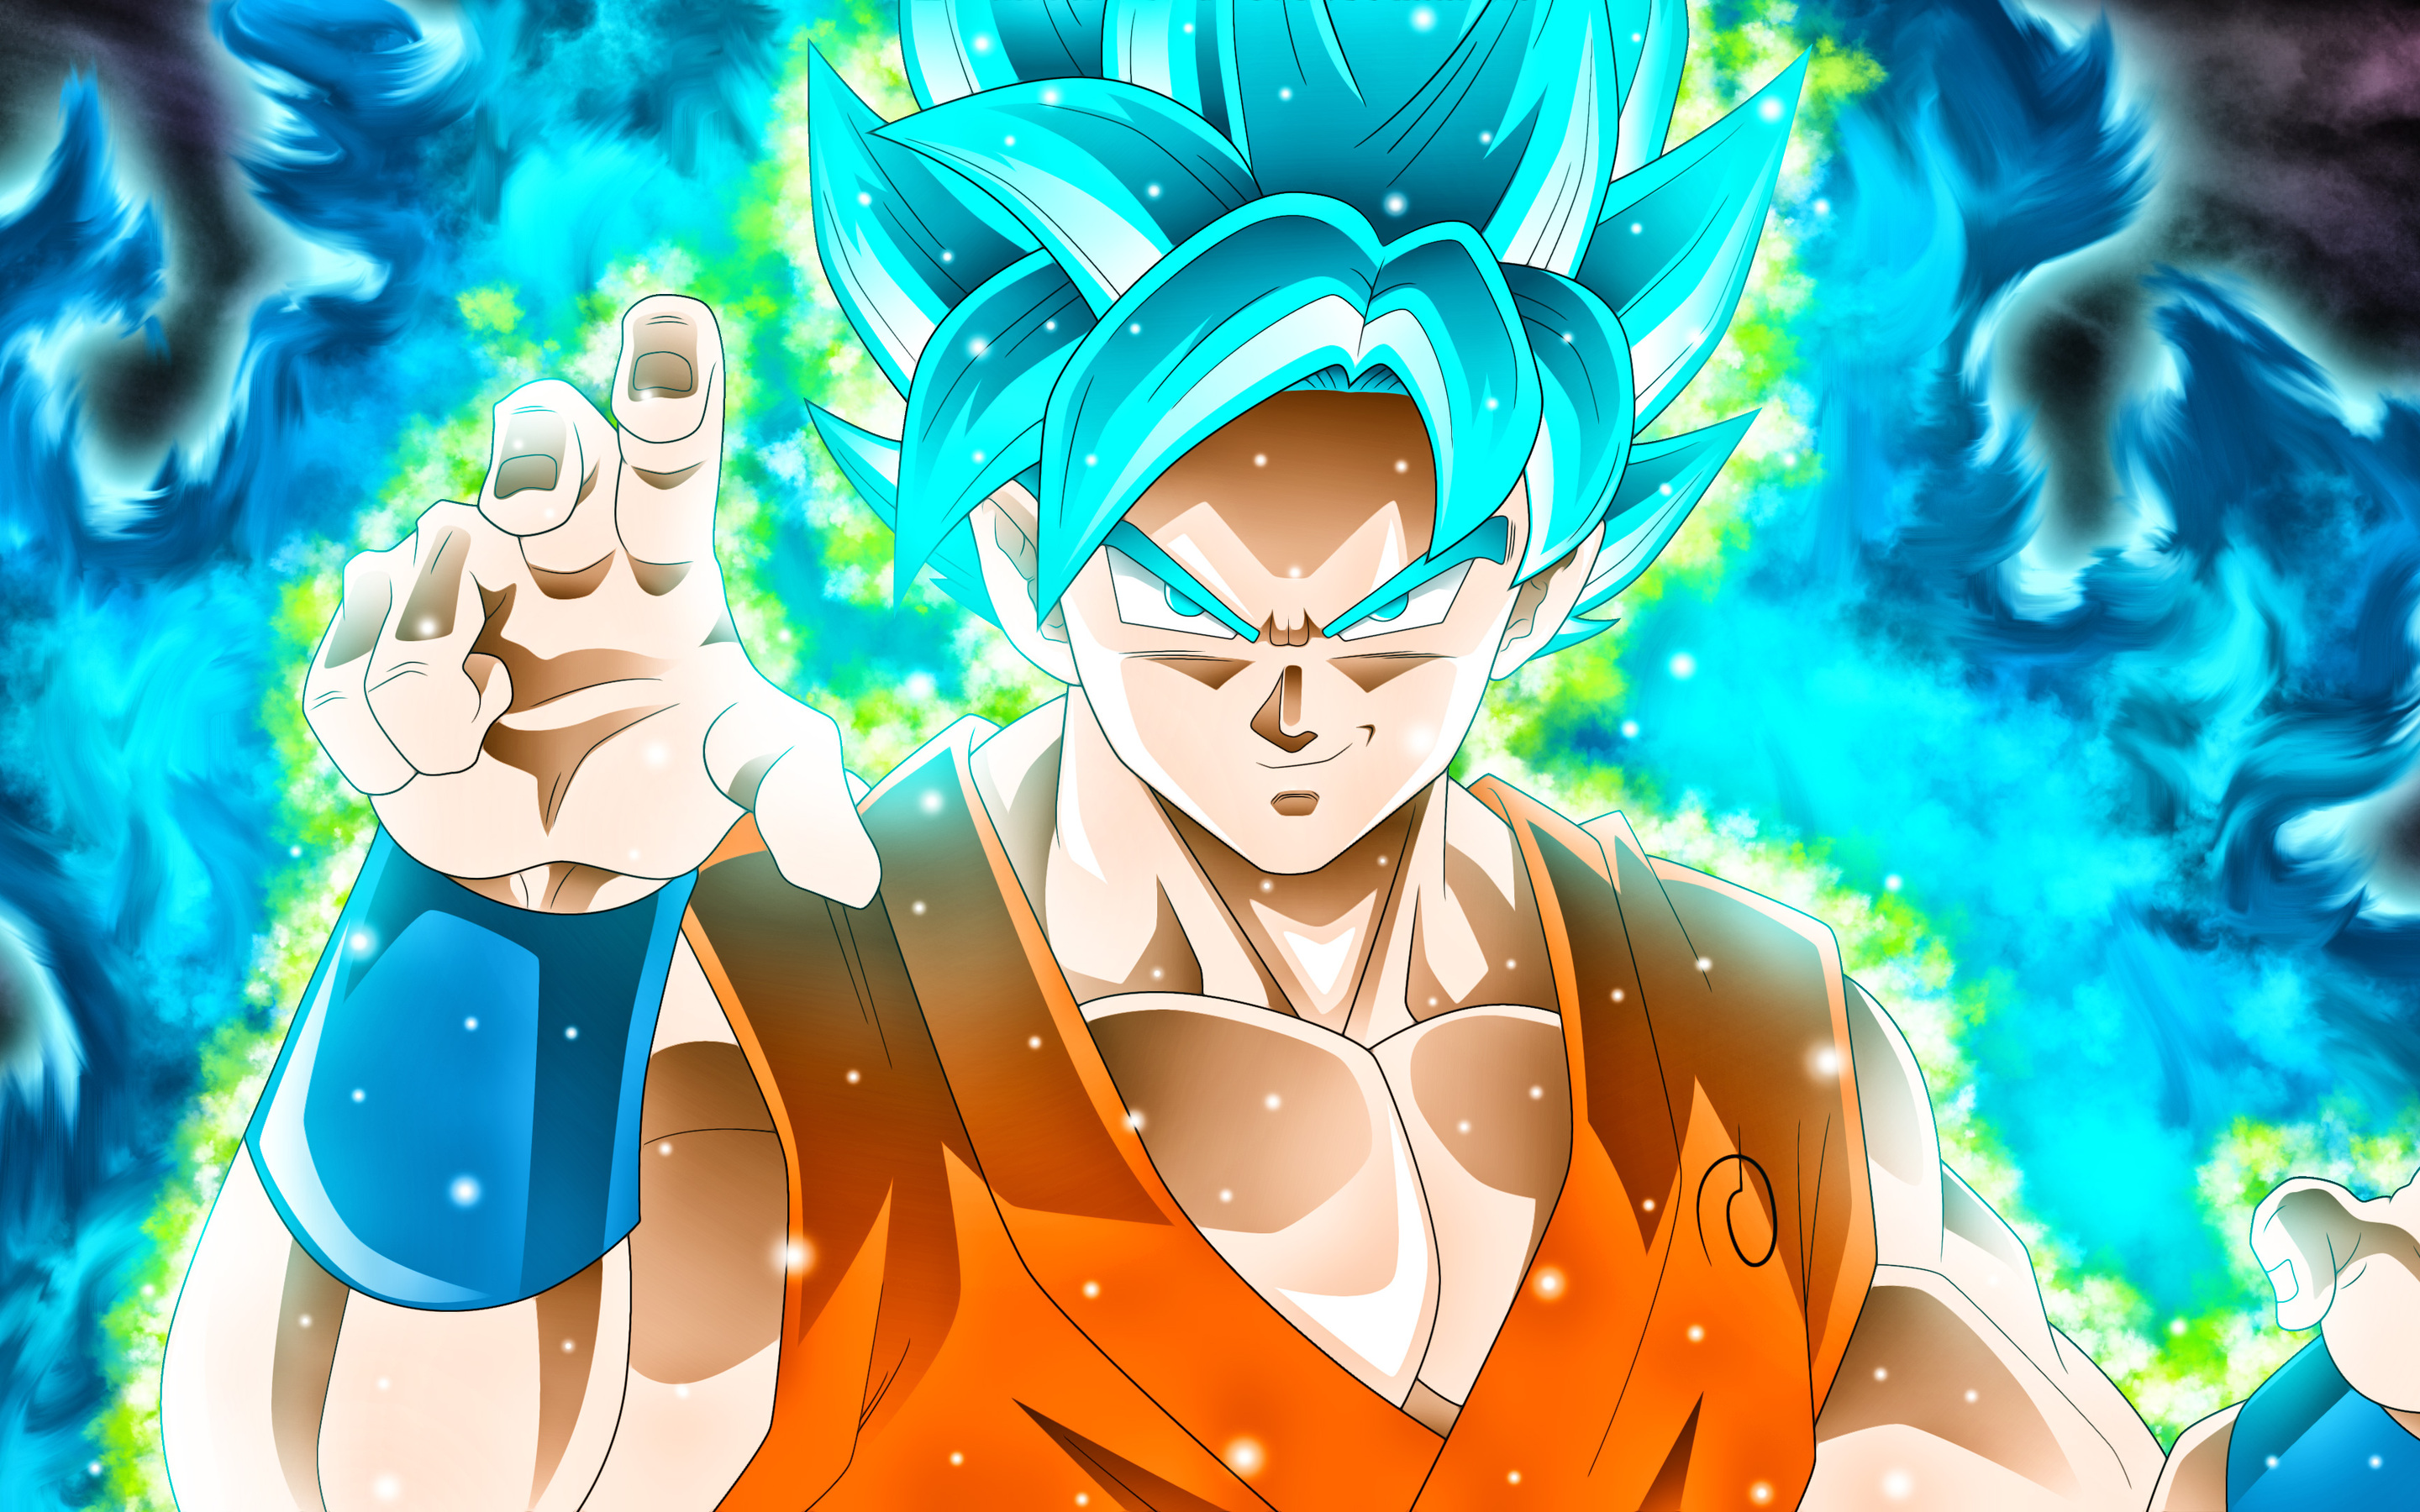 2880x1800 Goku Dragon Ball Super Macbook Pro Retina Hd 4k Wallpapers Images Backgrounds Photos And Pictures